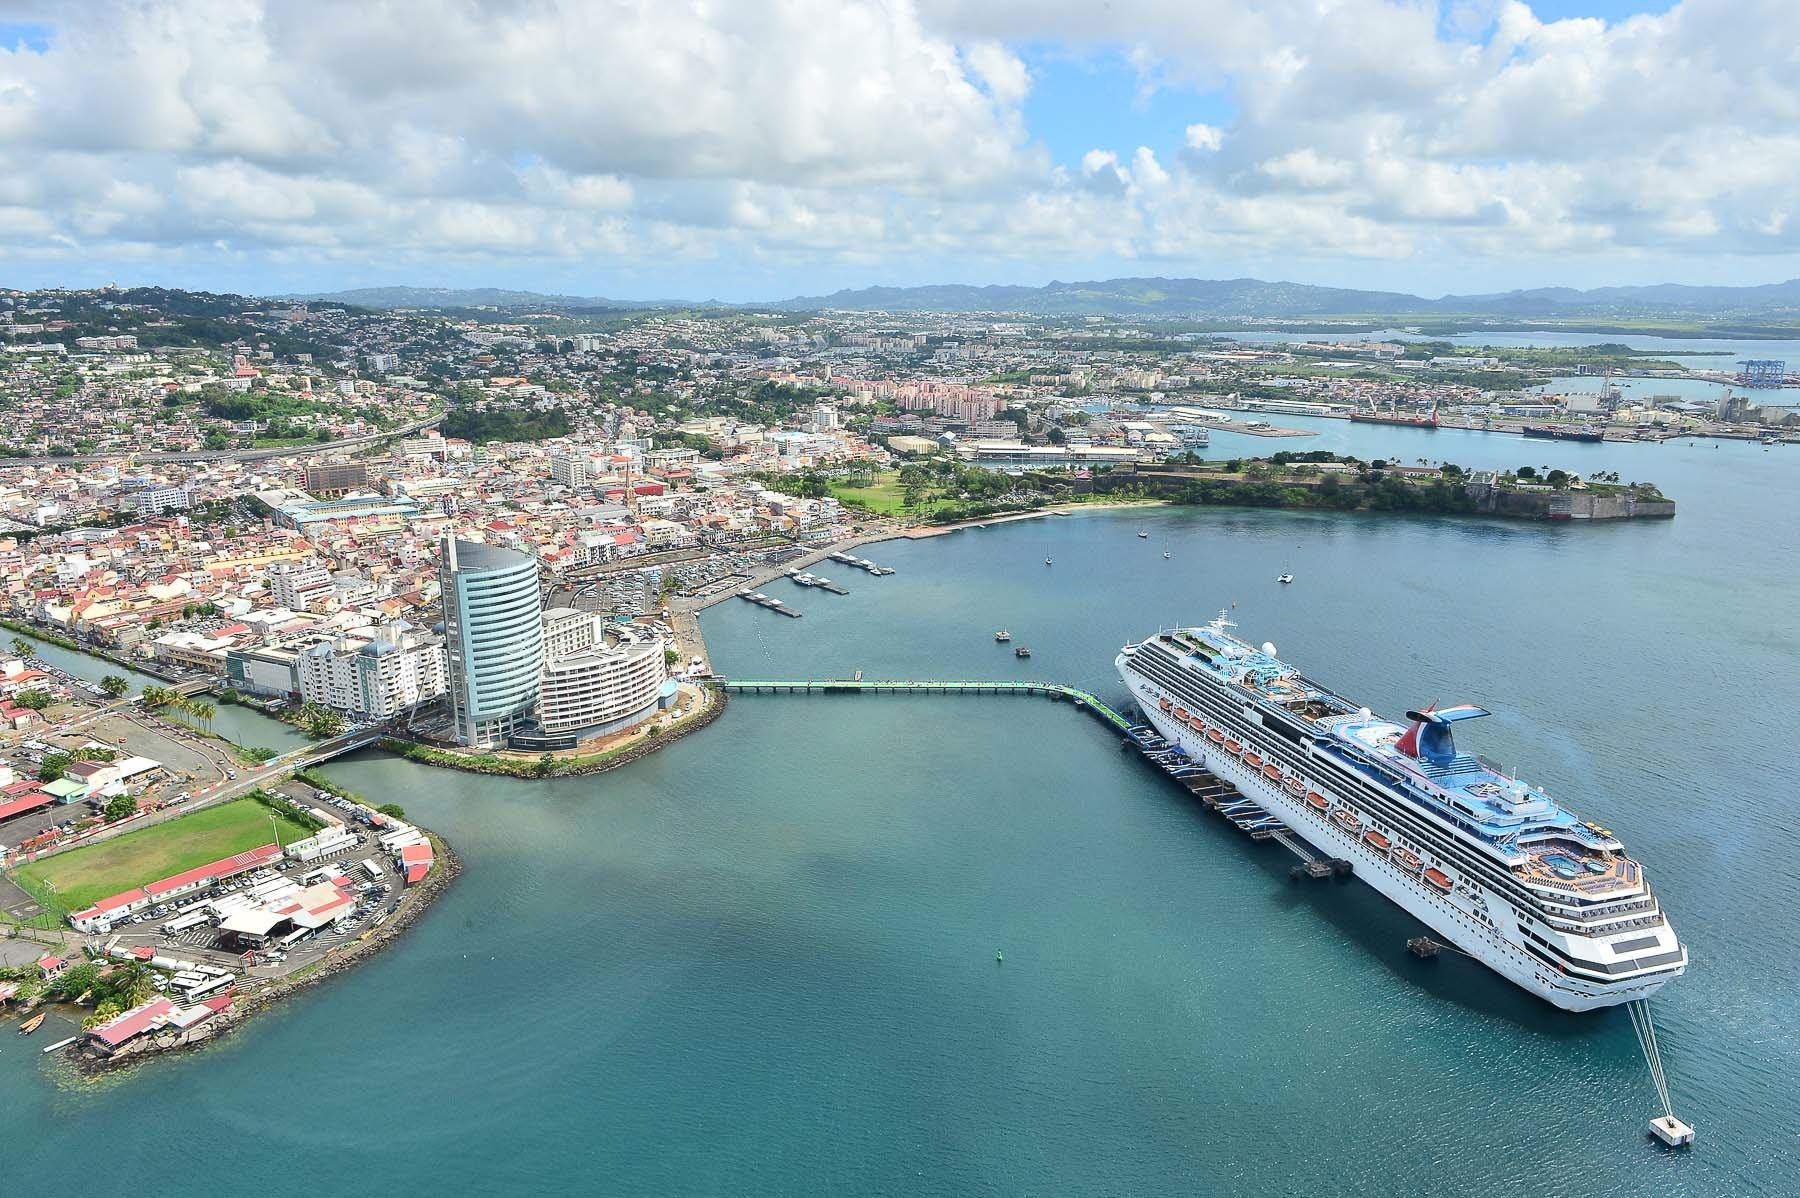 Port of Martinique wins second place!